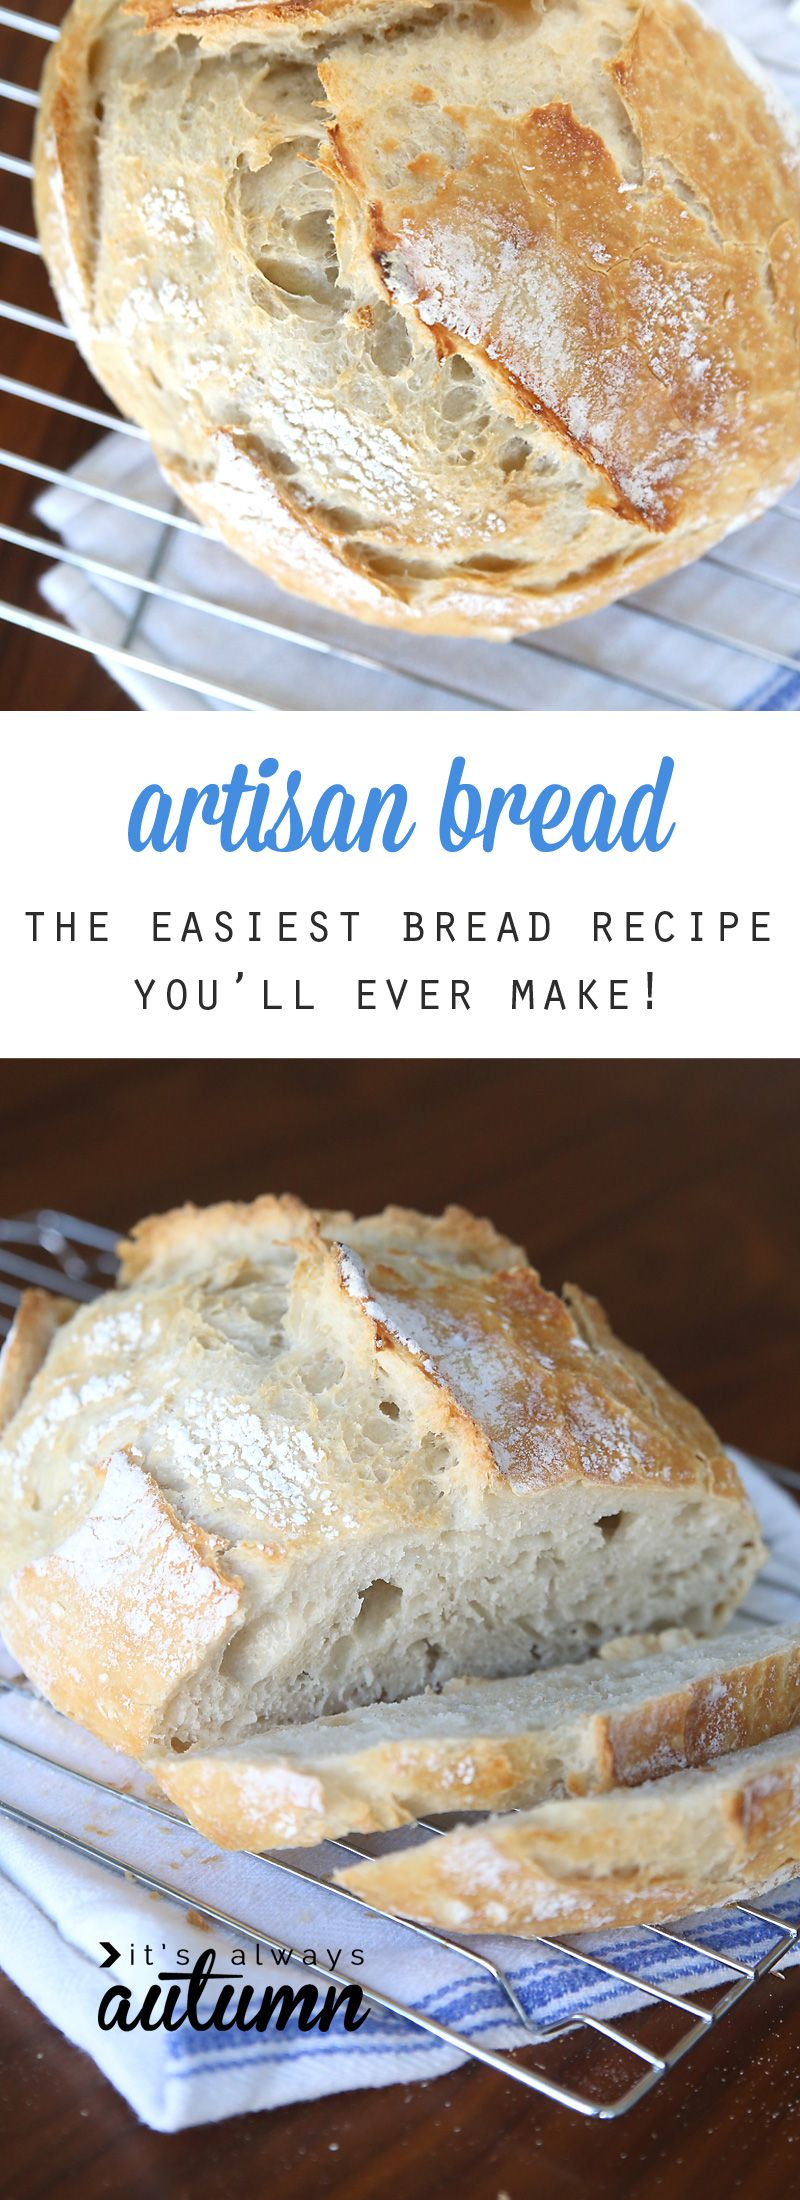 4 Ingredient Easy Artisan Bread